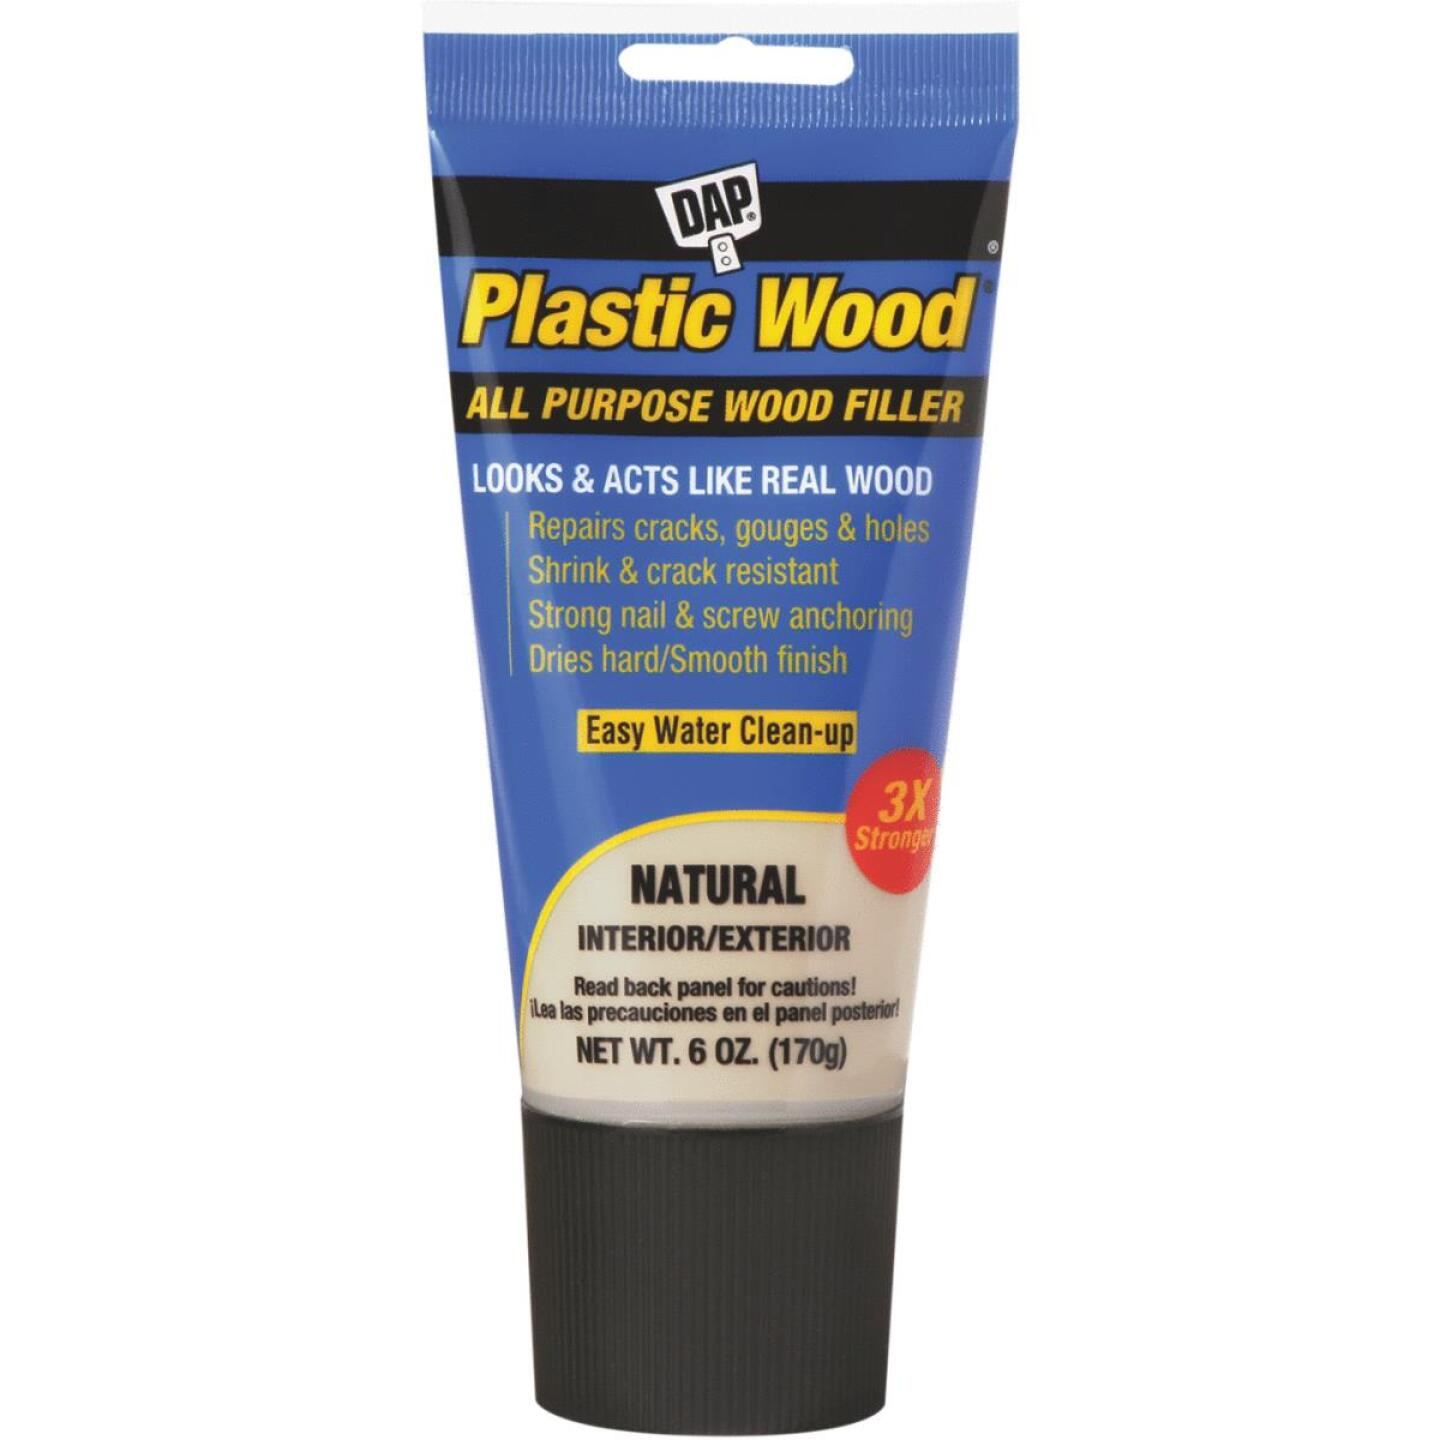 Dap Plastic Wood 6 Oz. Natural All Purpose Wood Filler Image 1